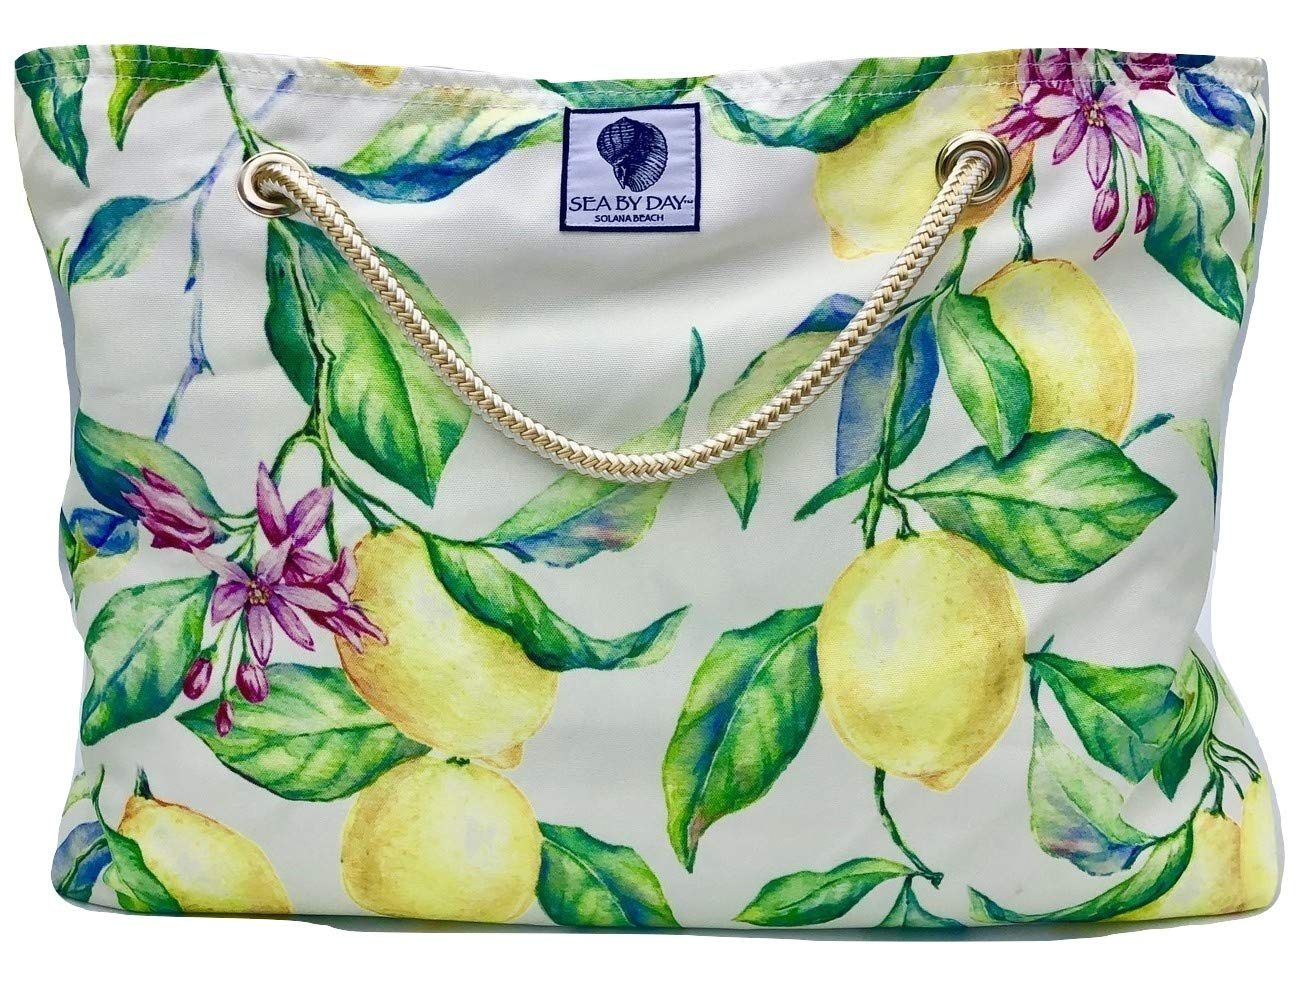 Classic Beach Bag, Pool Bag or Travel Tote- California Style Water Resistant (Lofty Lemon)